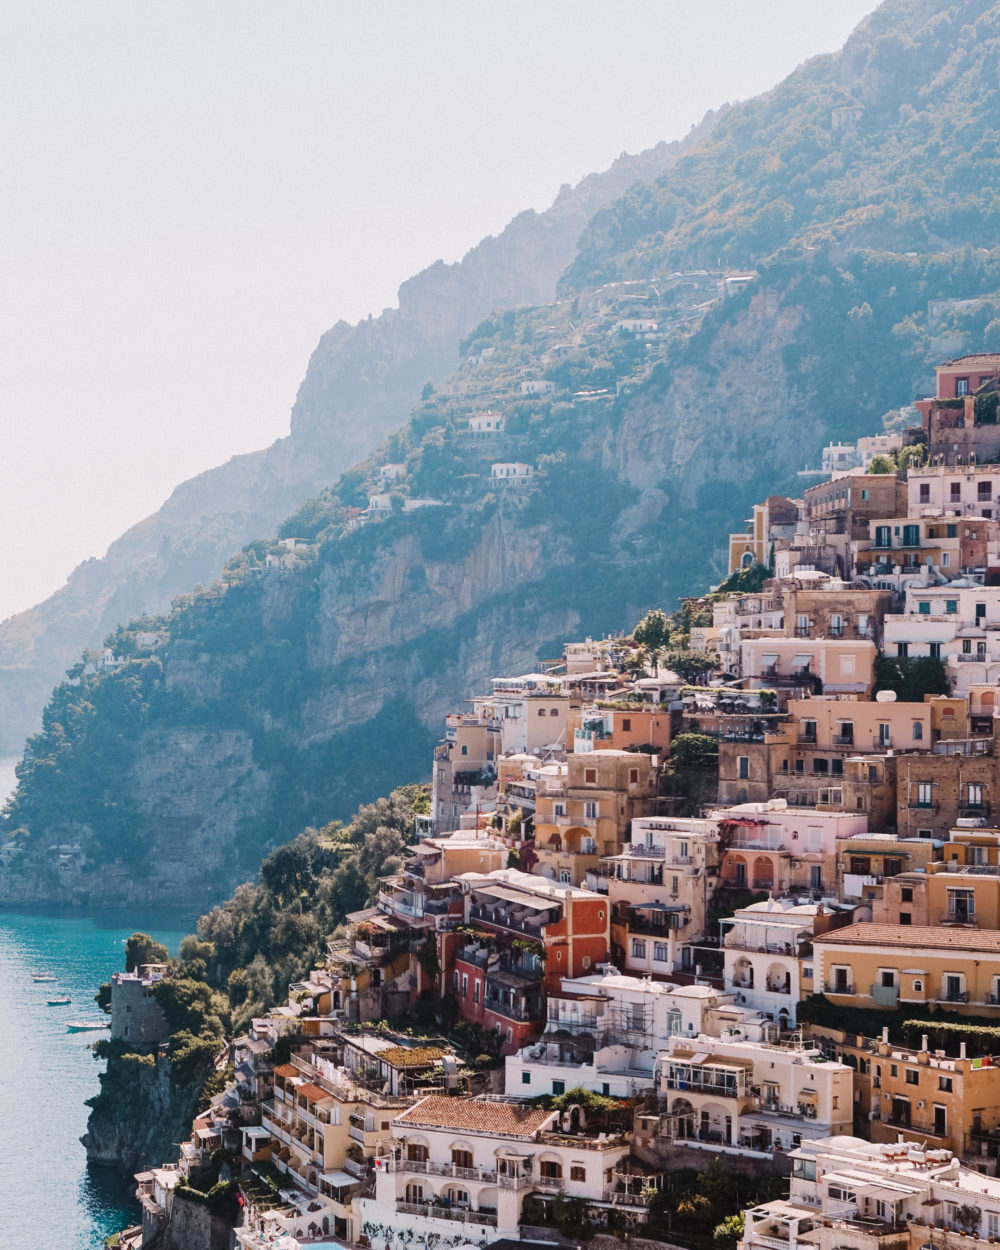 houses on the hills of Positano Italy